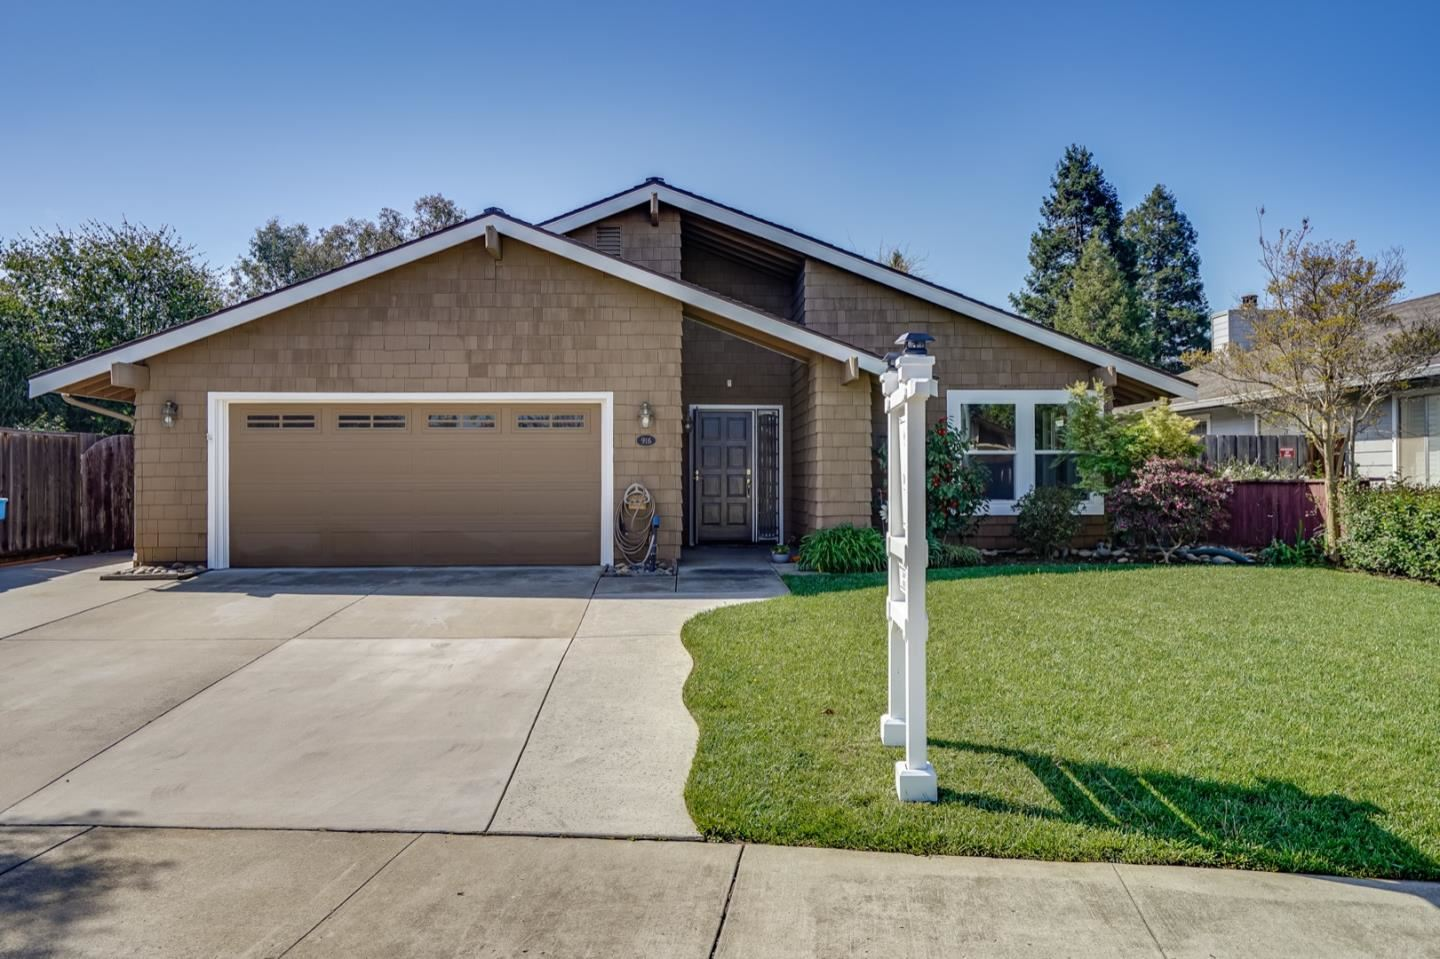 Photo for 916 Howard AVE, GILROY, CA 95020 (MLS # ML81834350)